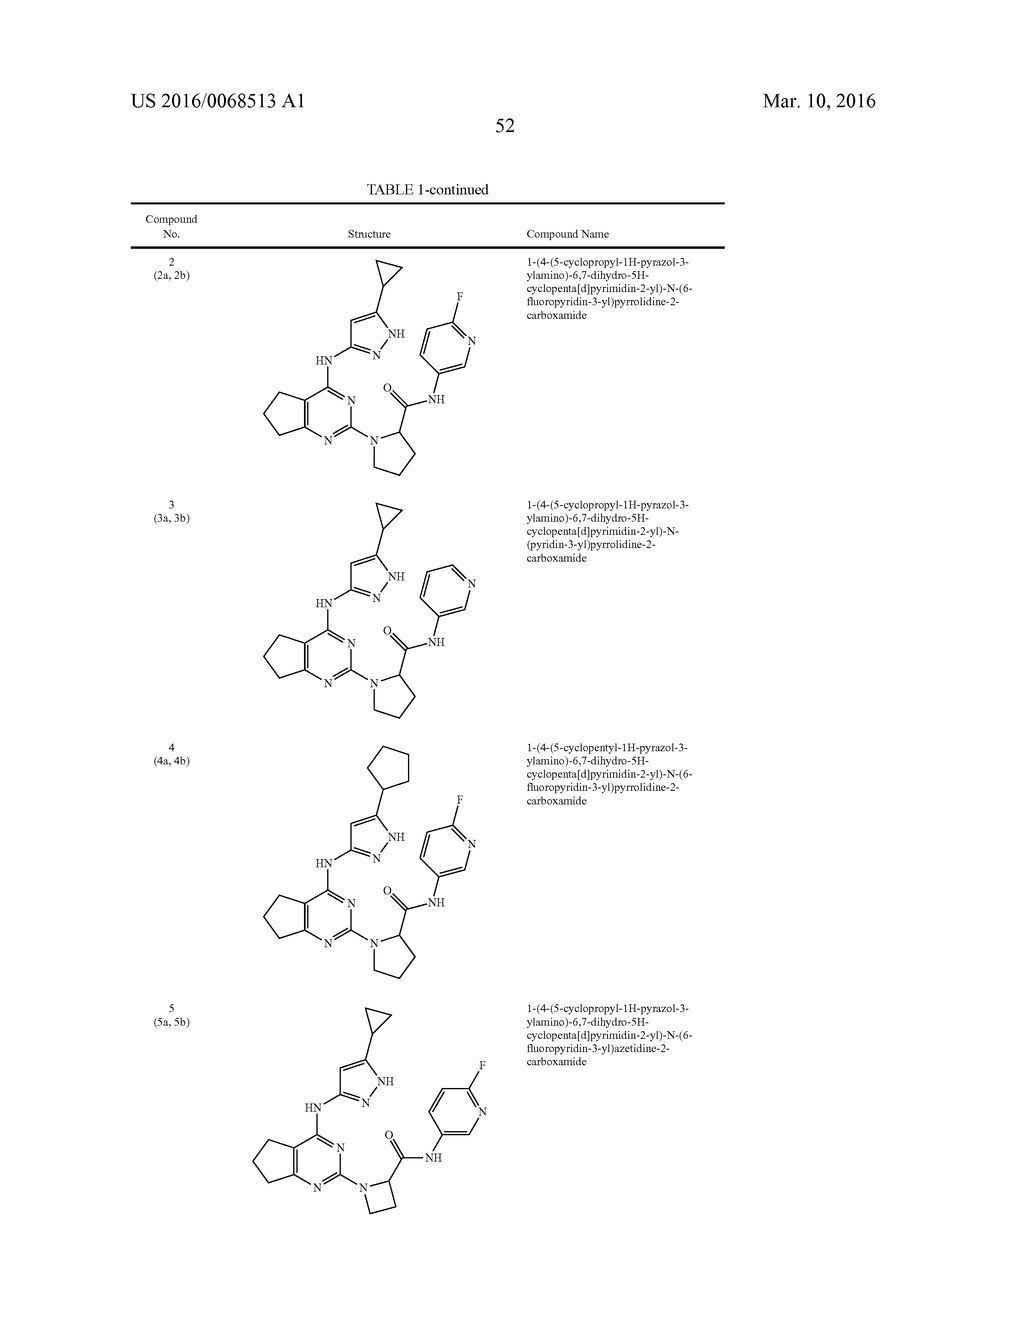 FUSED PYRIMIDINE COMPOUNDS AND USE THEREOF - diagram, schematic, and image 57